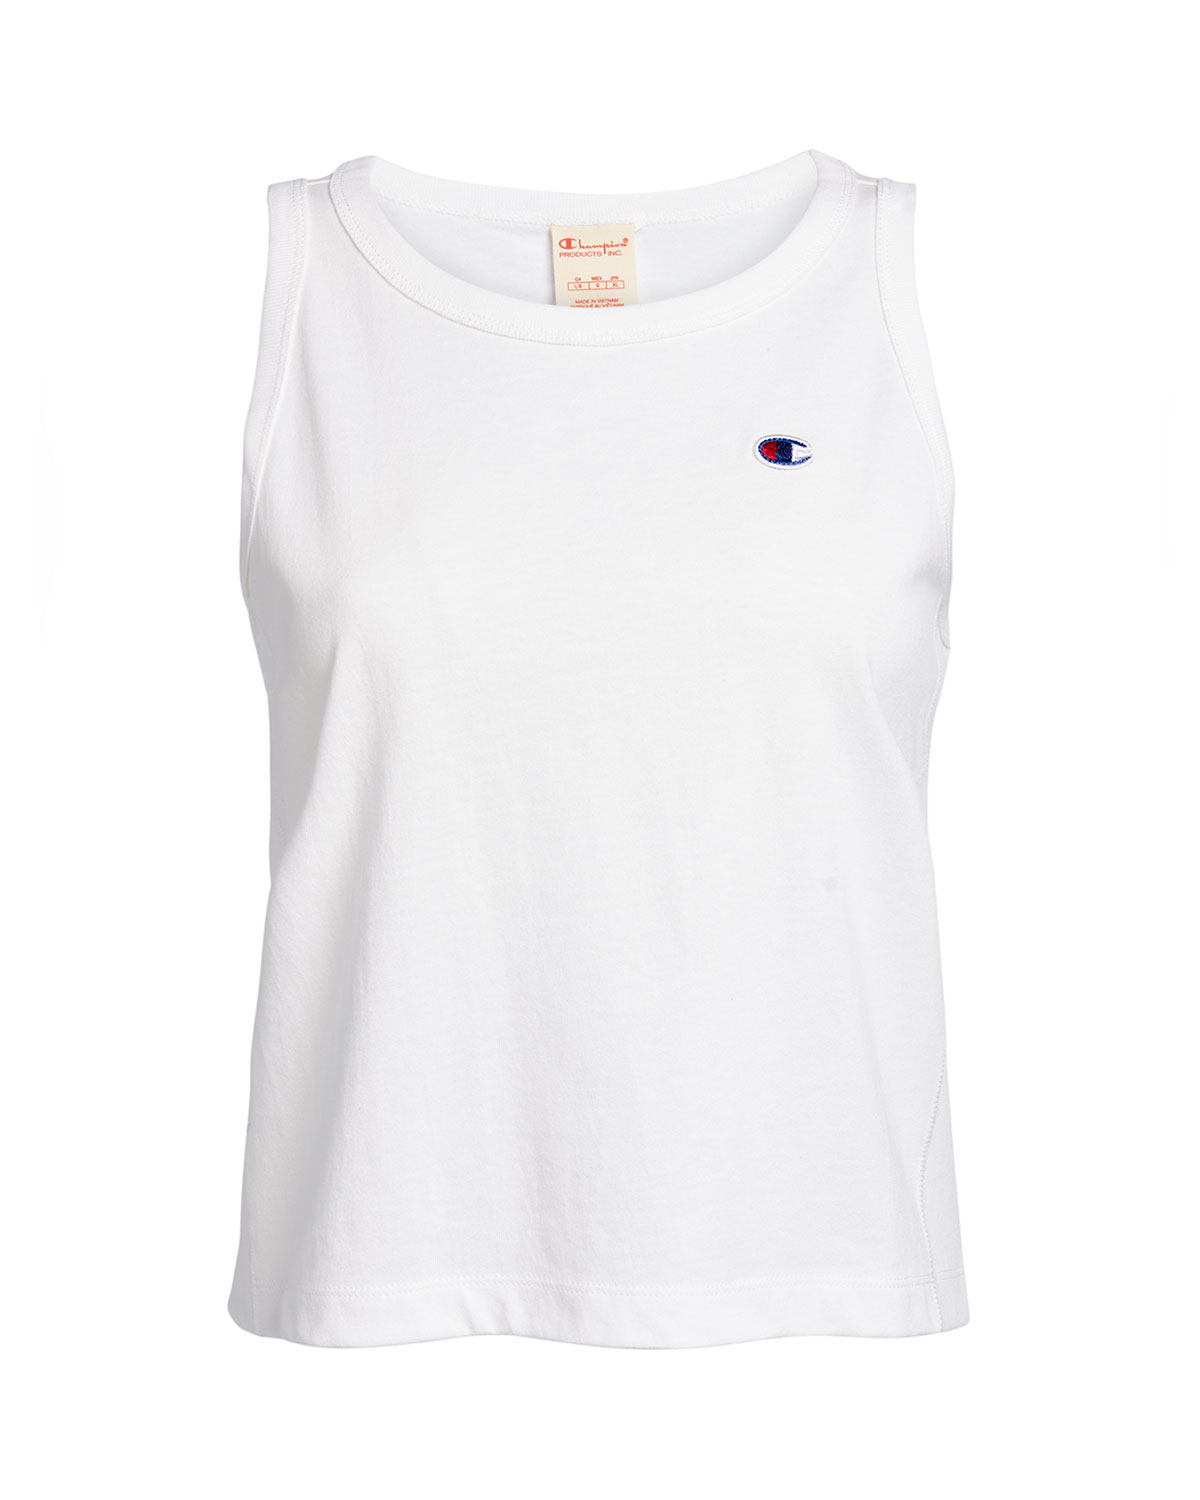 Champion Europe Reverse Weave Cropped Tank Top